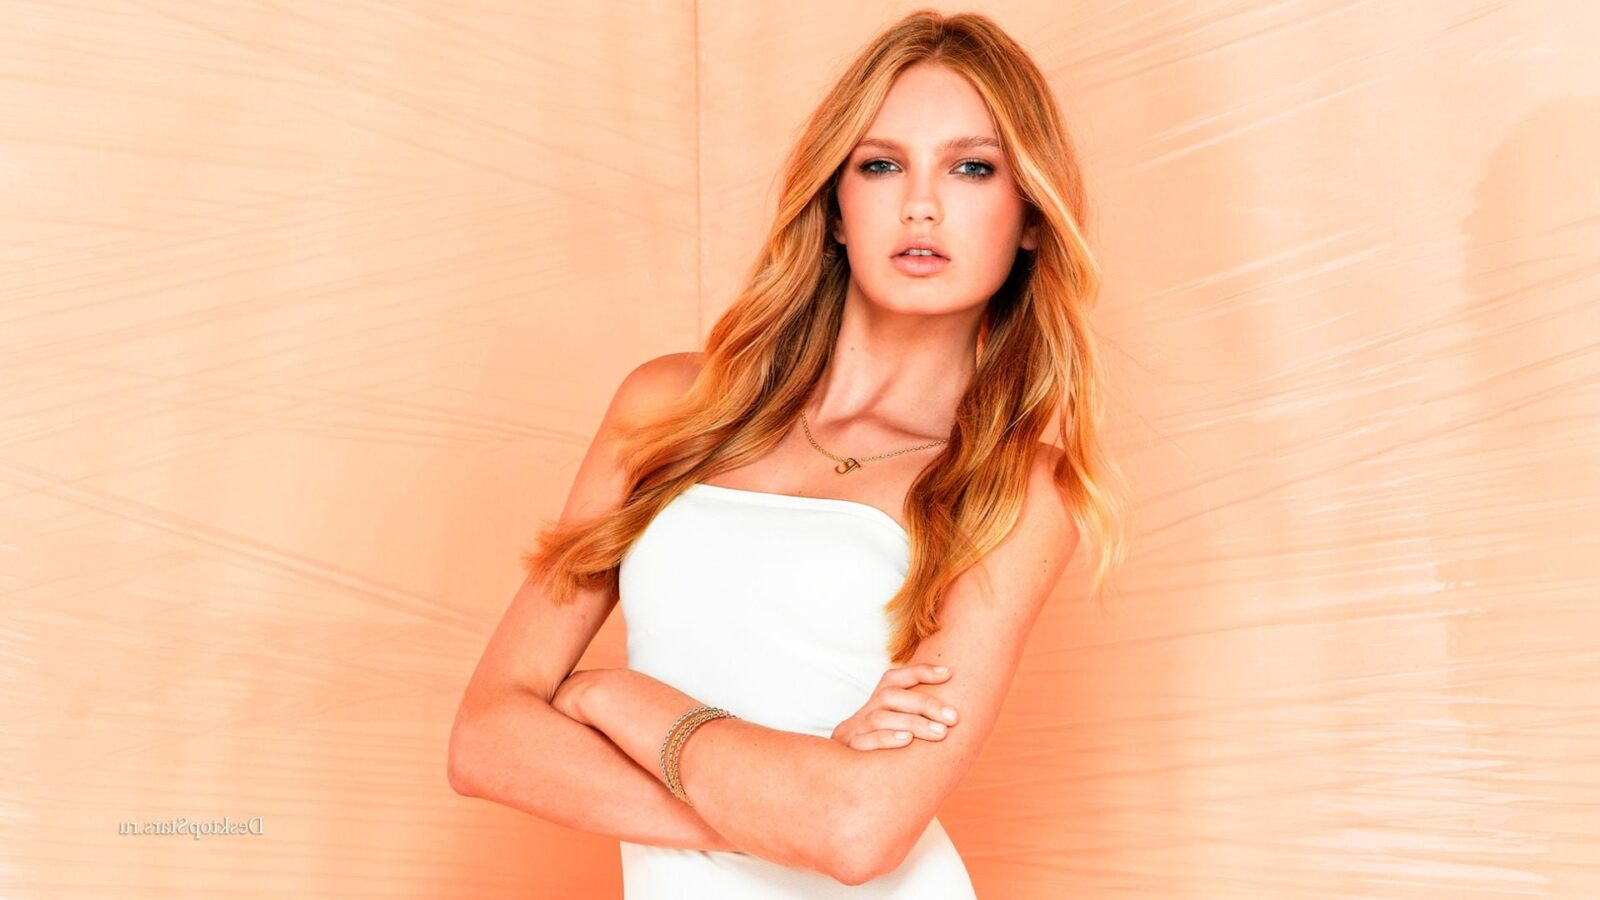 wallpaper of Romee Strijd in white dress